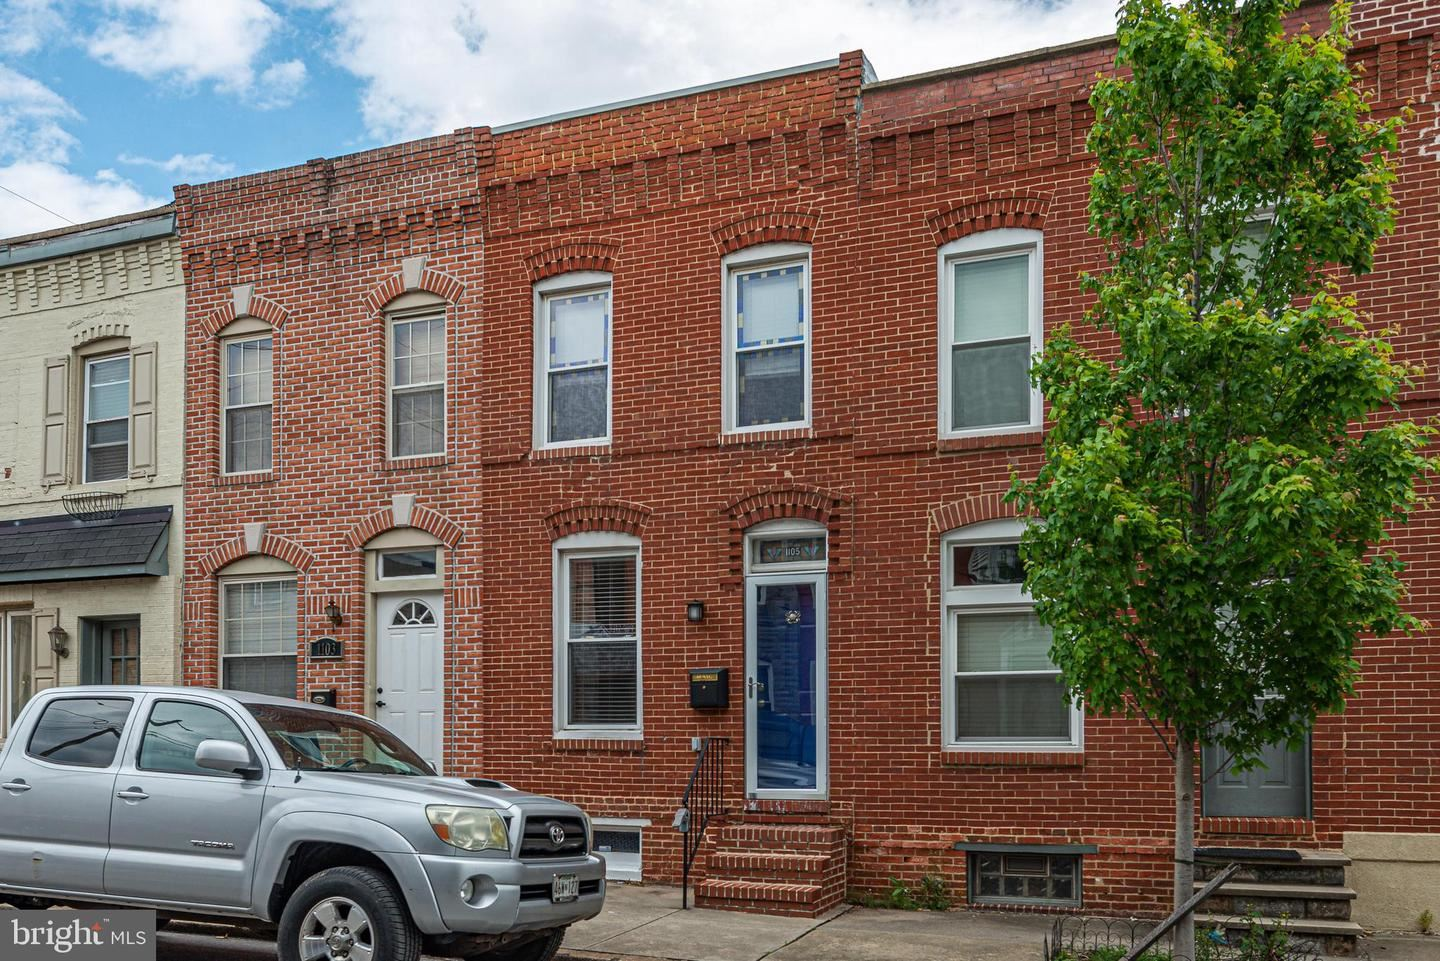 1105 S BOULDIN ST, Baltimore, MD 21224 - MLS#: MDBA550646